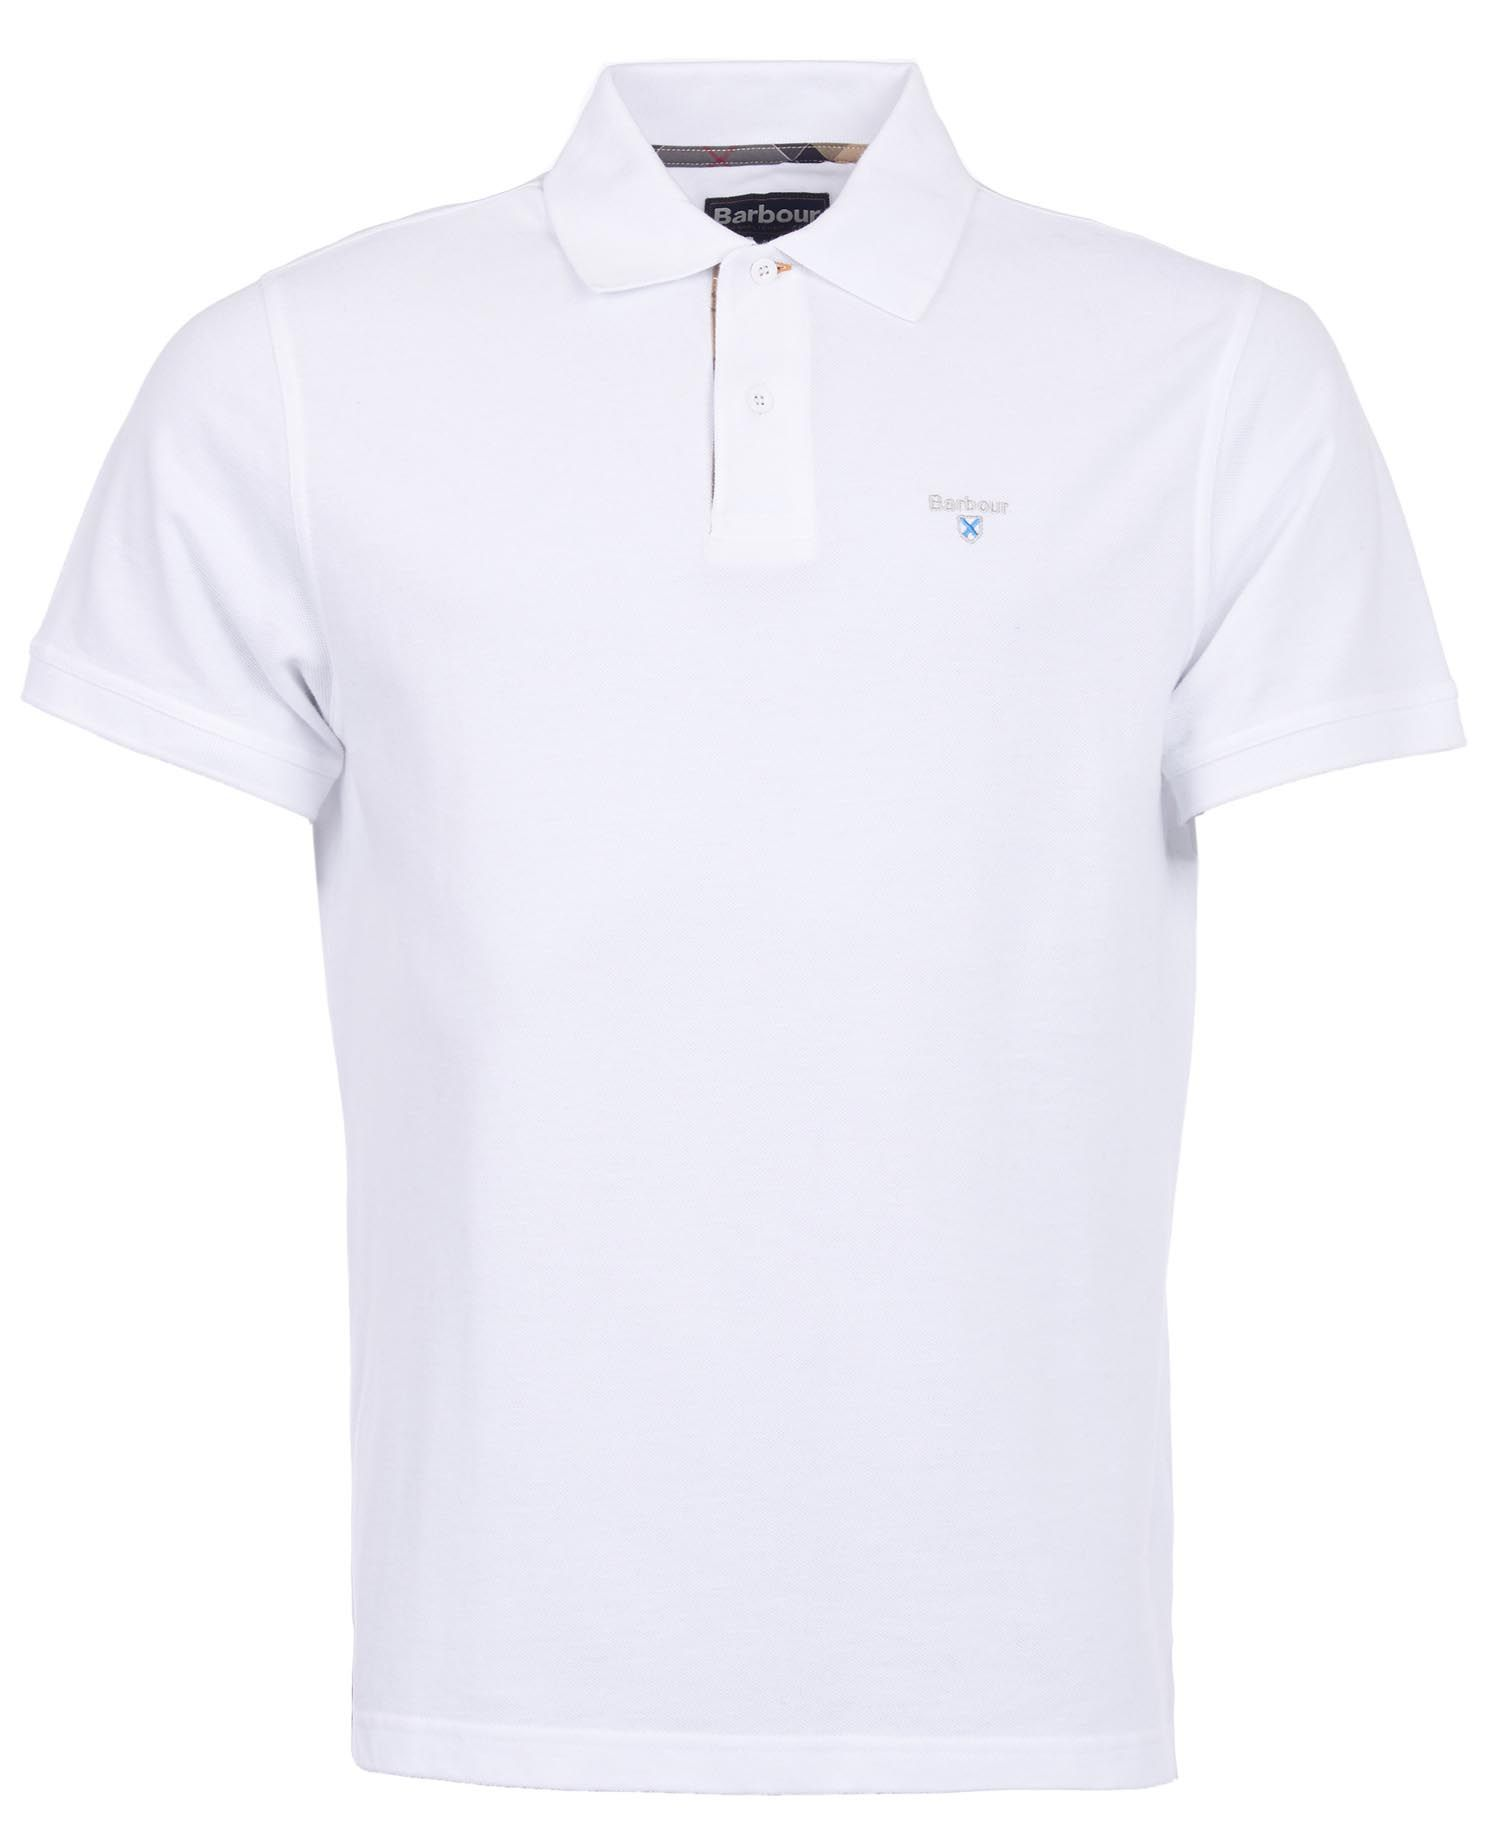 Barbour Tartan Pique Polo White